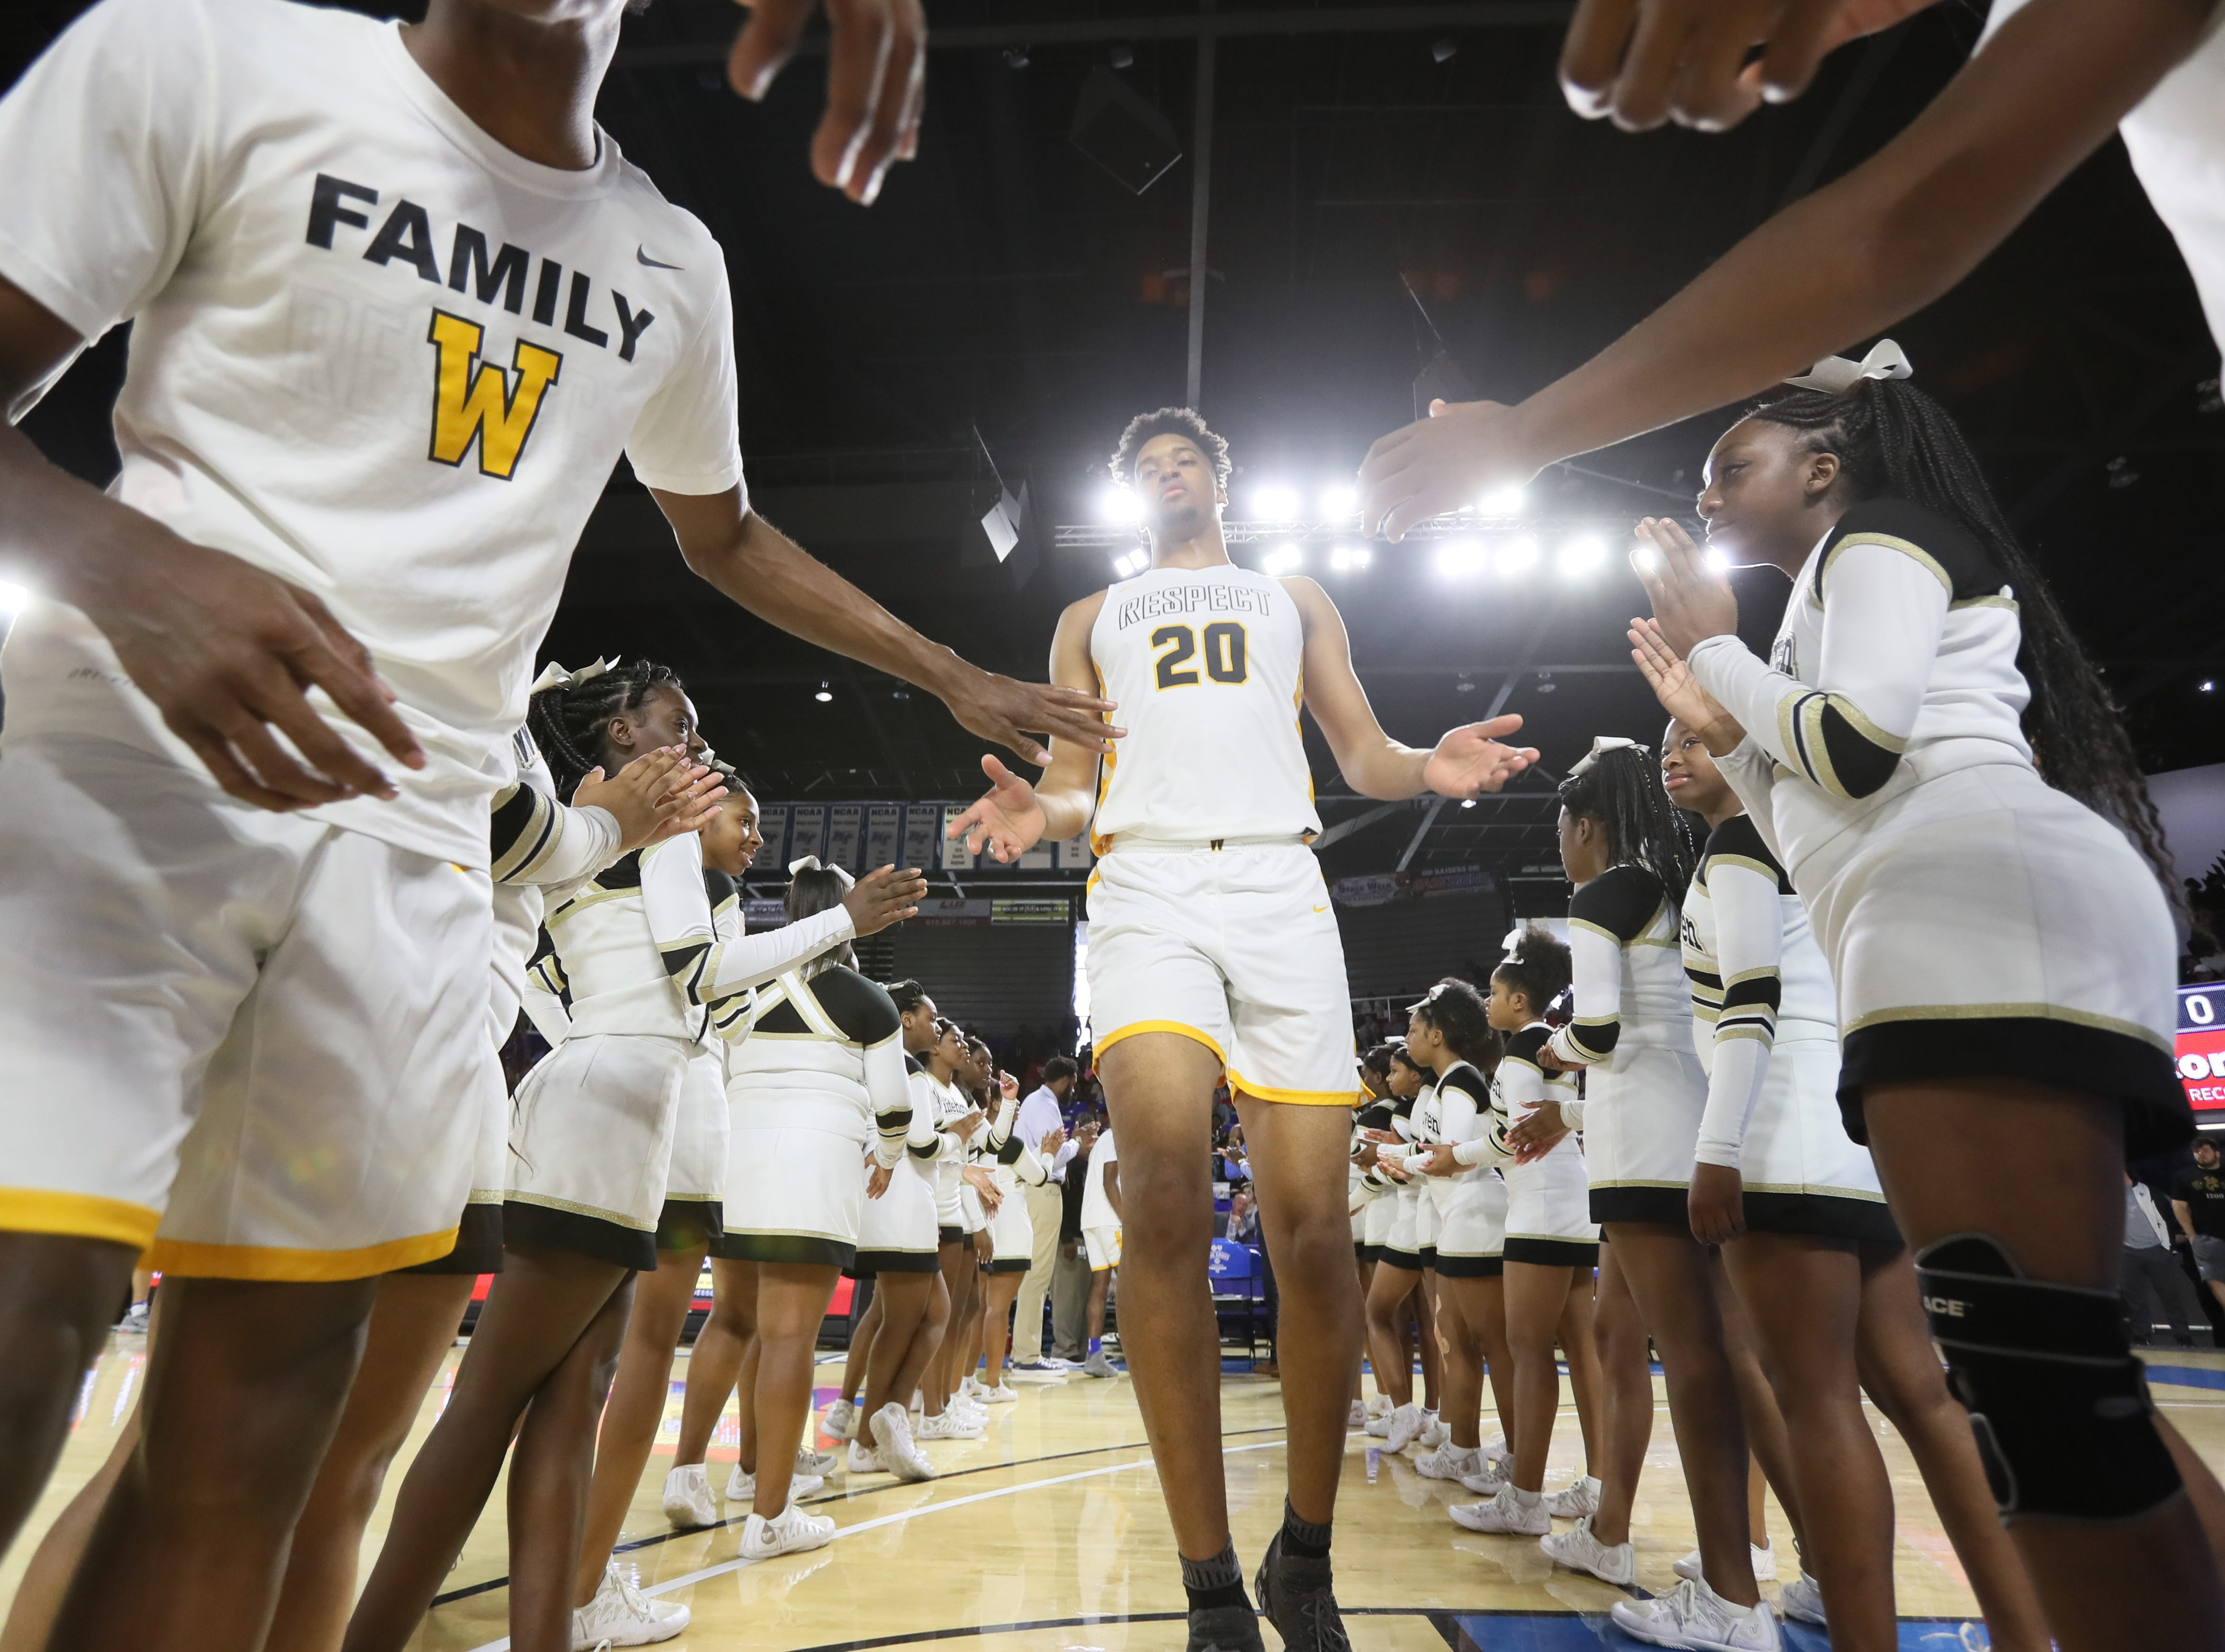 Whitehaven's Jordan Wilmore is introduced before they take on Bearden during the Class AAA boys basketball state semifinal at the Murphy Center in Murfreesboro, Tenn. on Friday, March 15, 2019.